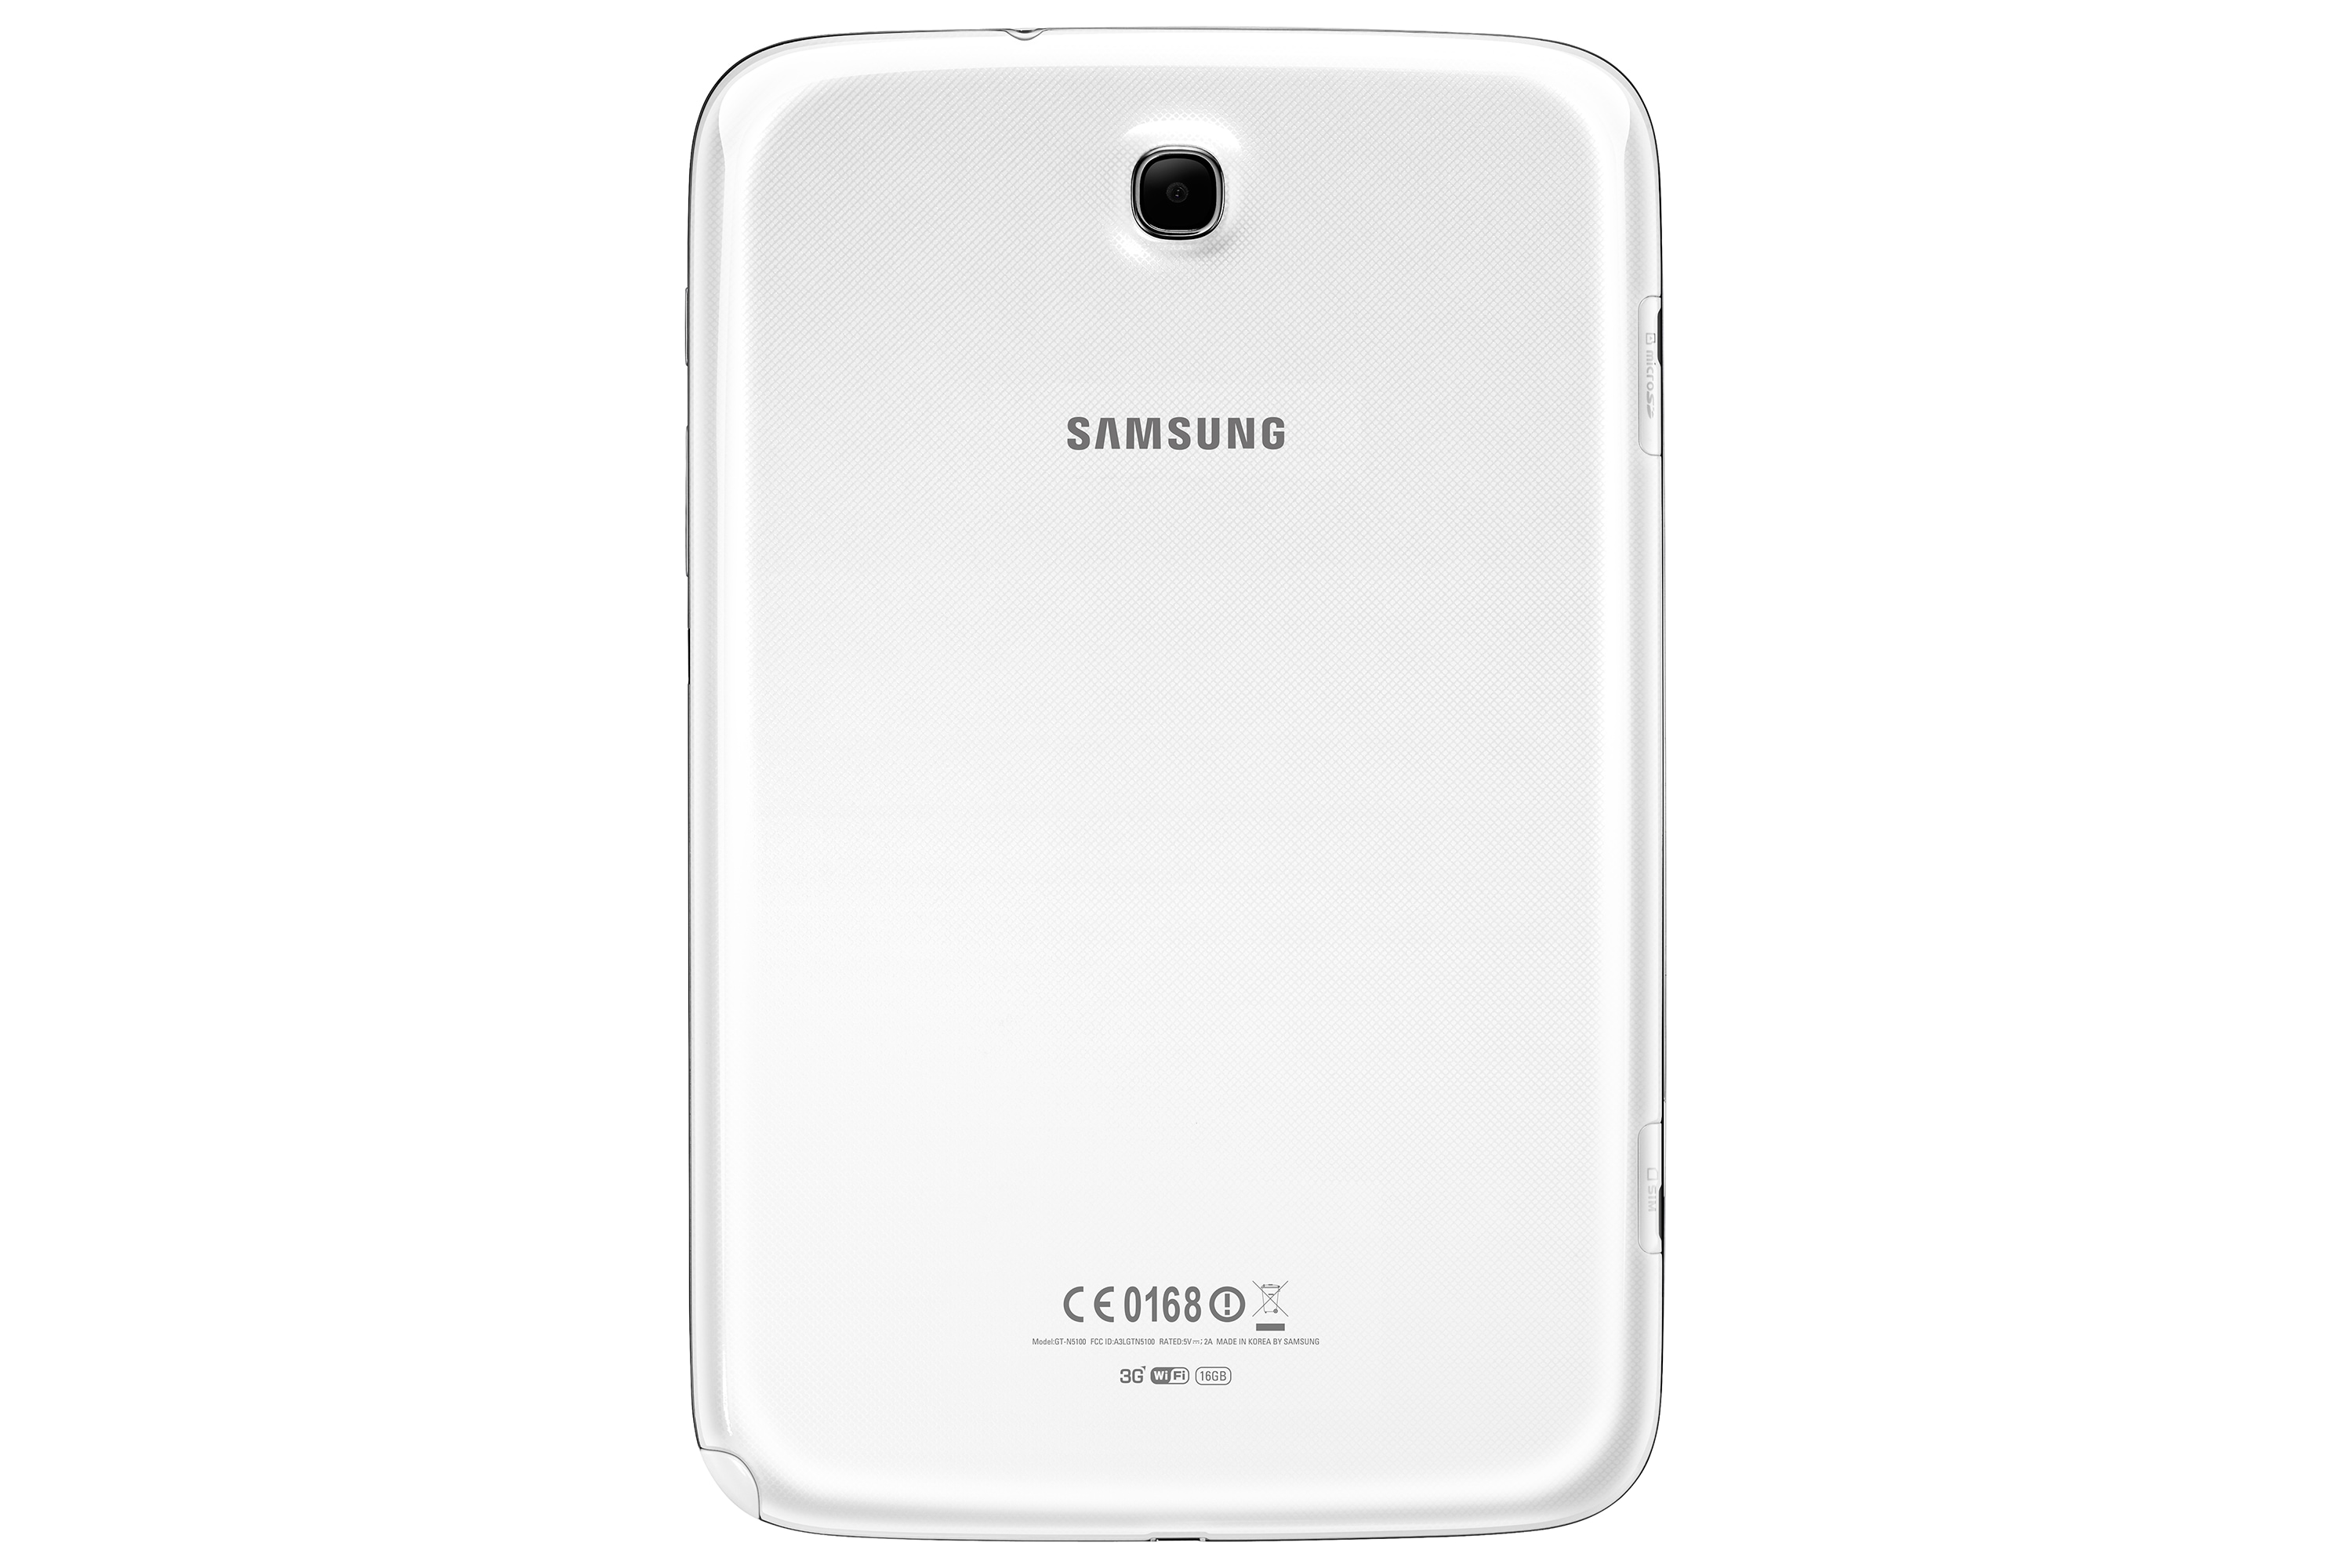 http://images.samsung.com/is/image/samsung/id_GT-N5100ZWAXSE_000179830_Standard?$Download-Source$